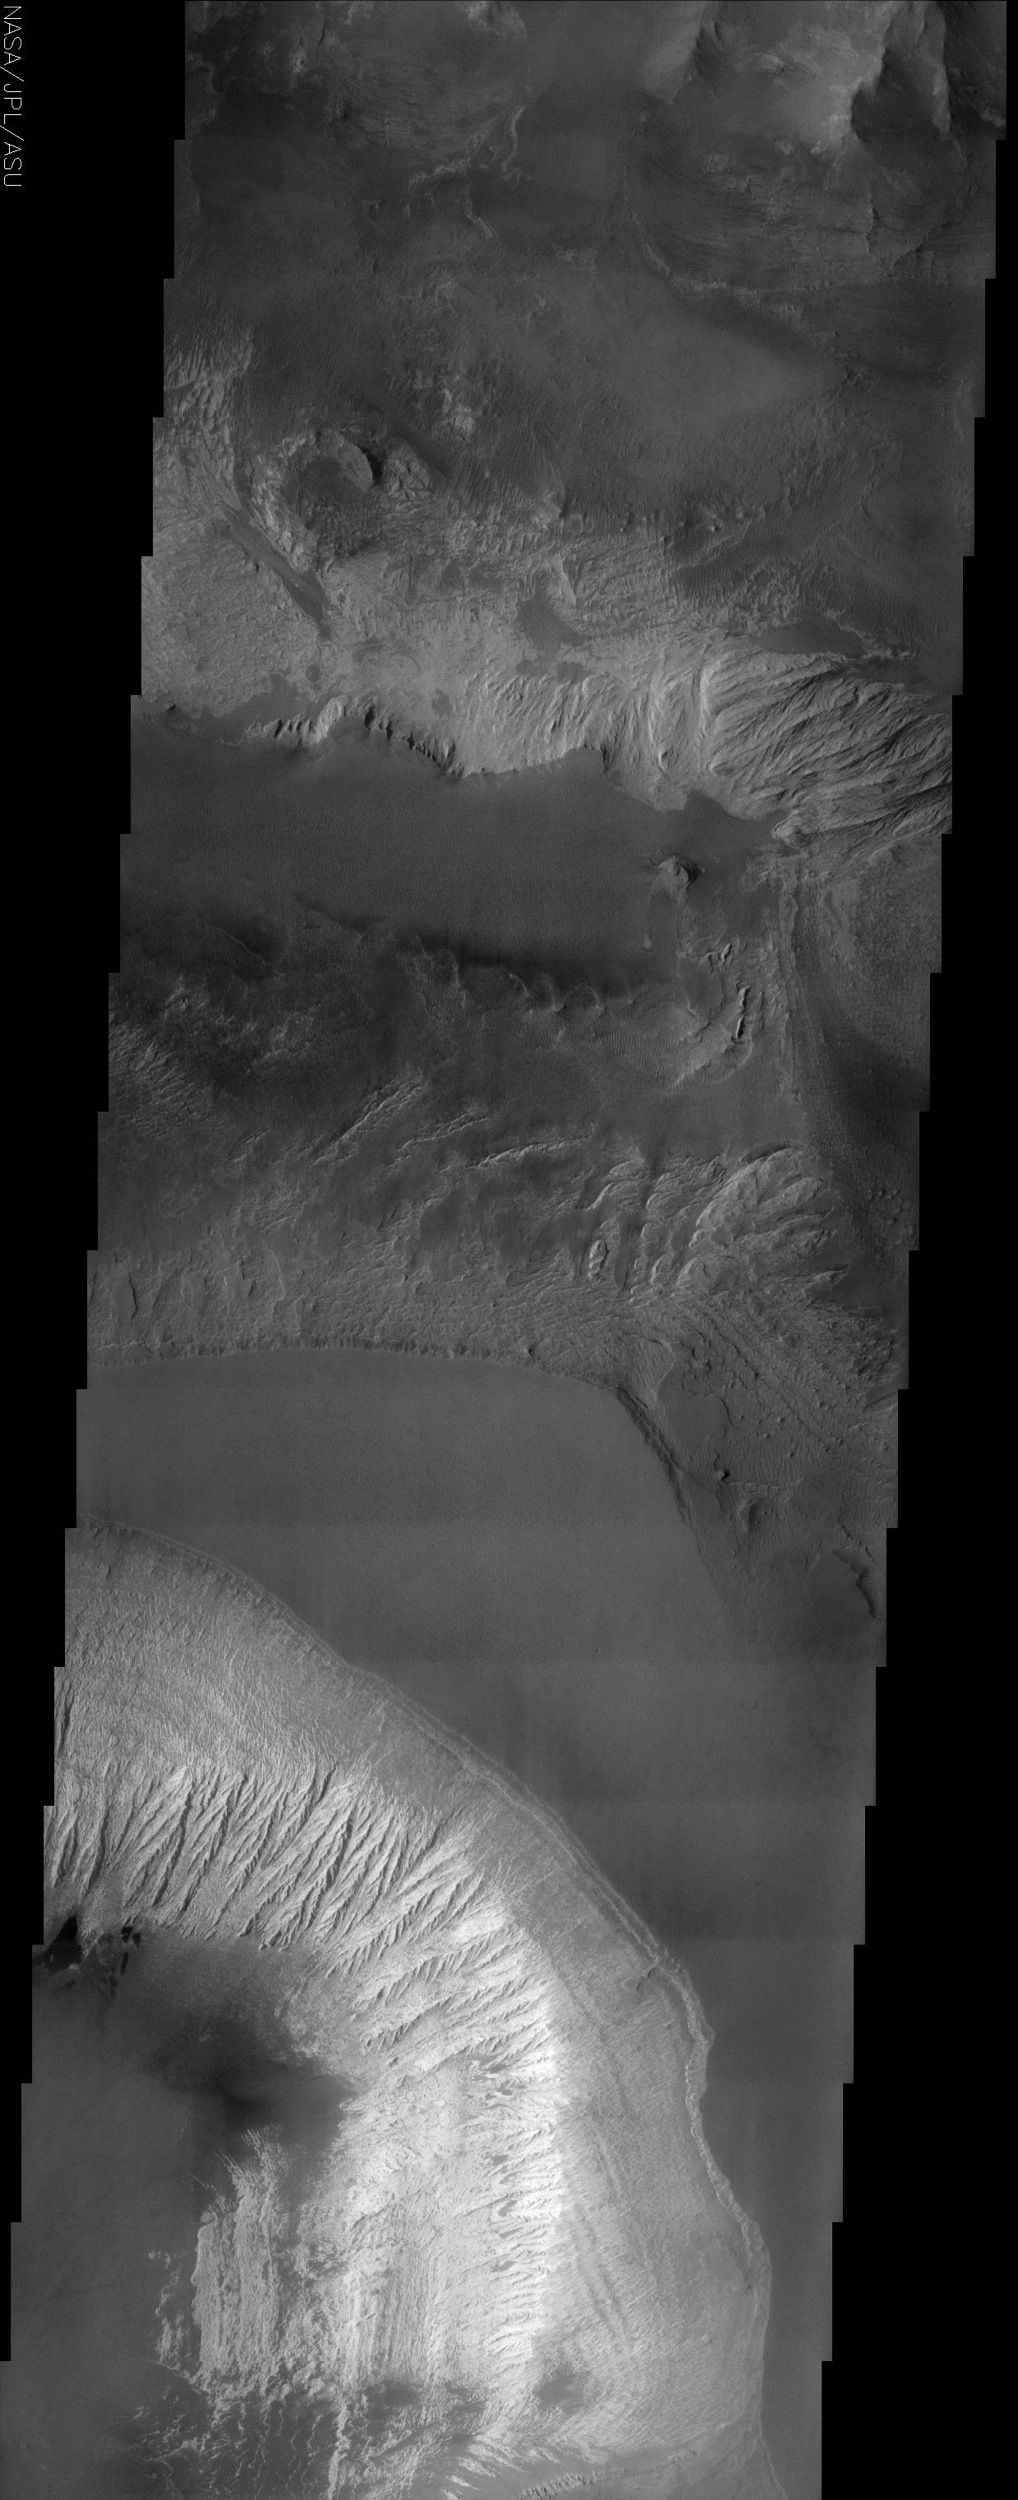 This NASA Mars Odyssey image shows the effects of erosion on a beautiful sequence of dramatically layered rocks within Candor Chasma, which is part of the Valles Marineris.